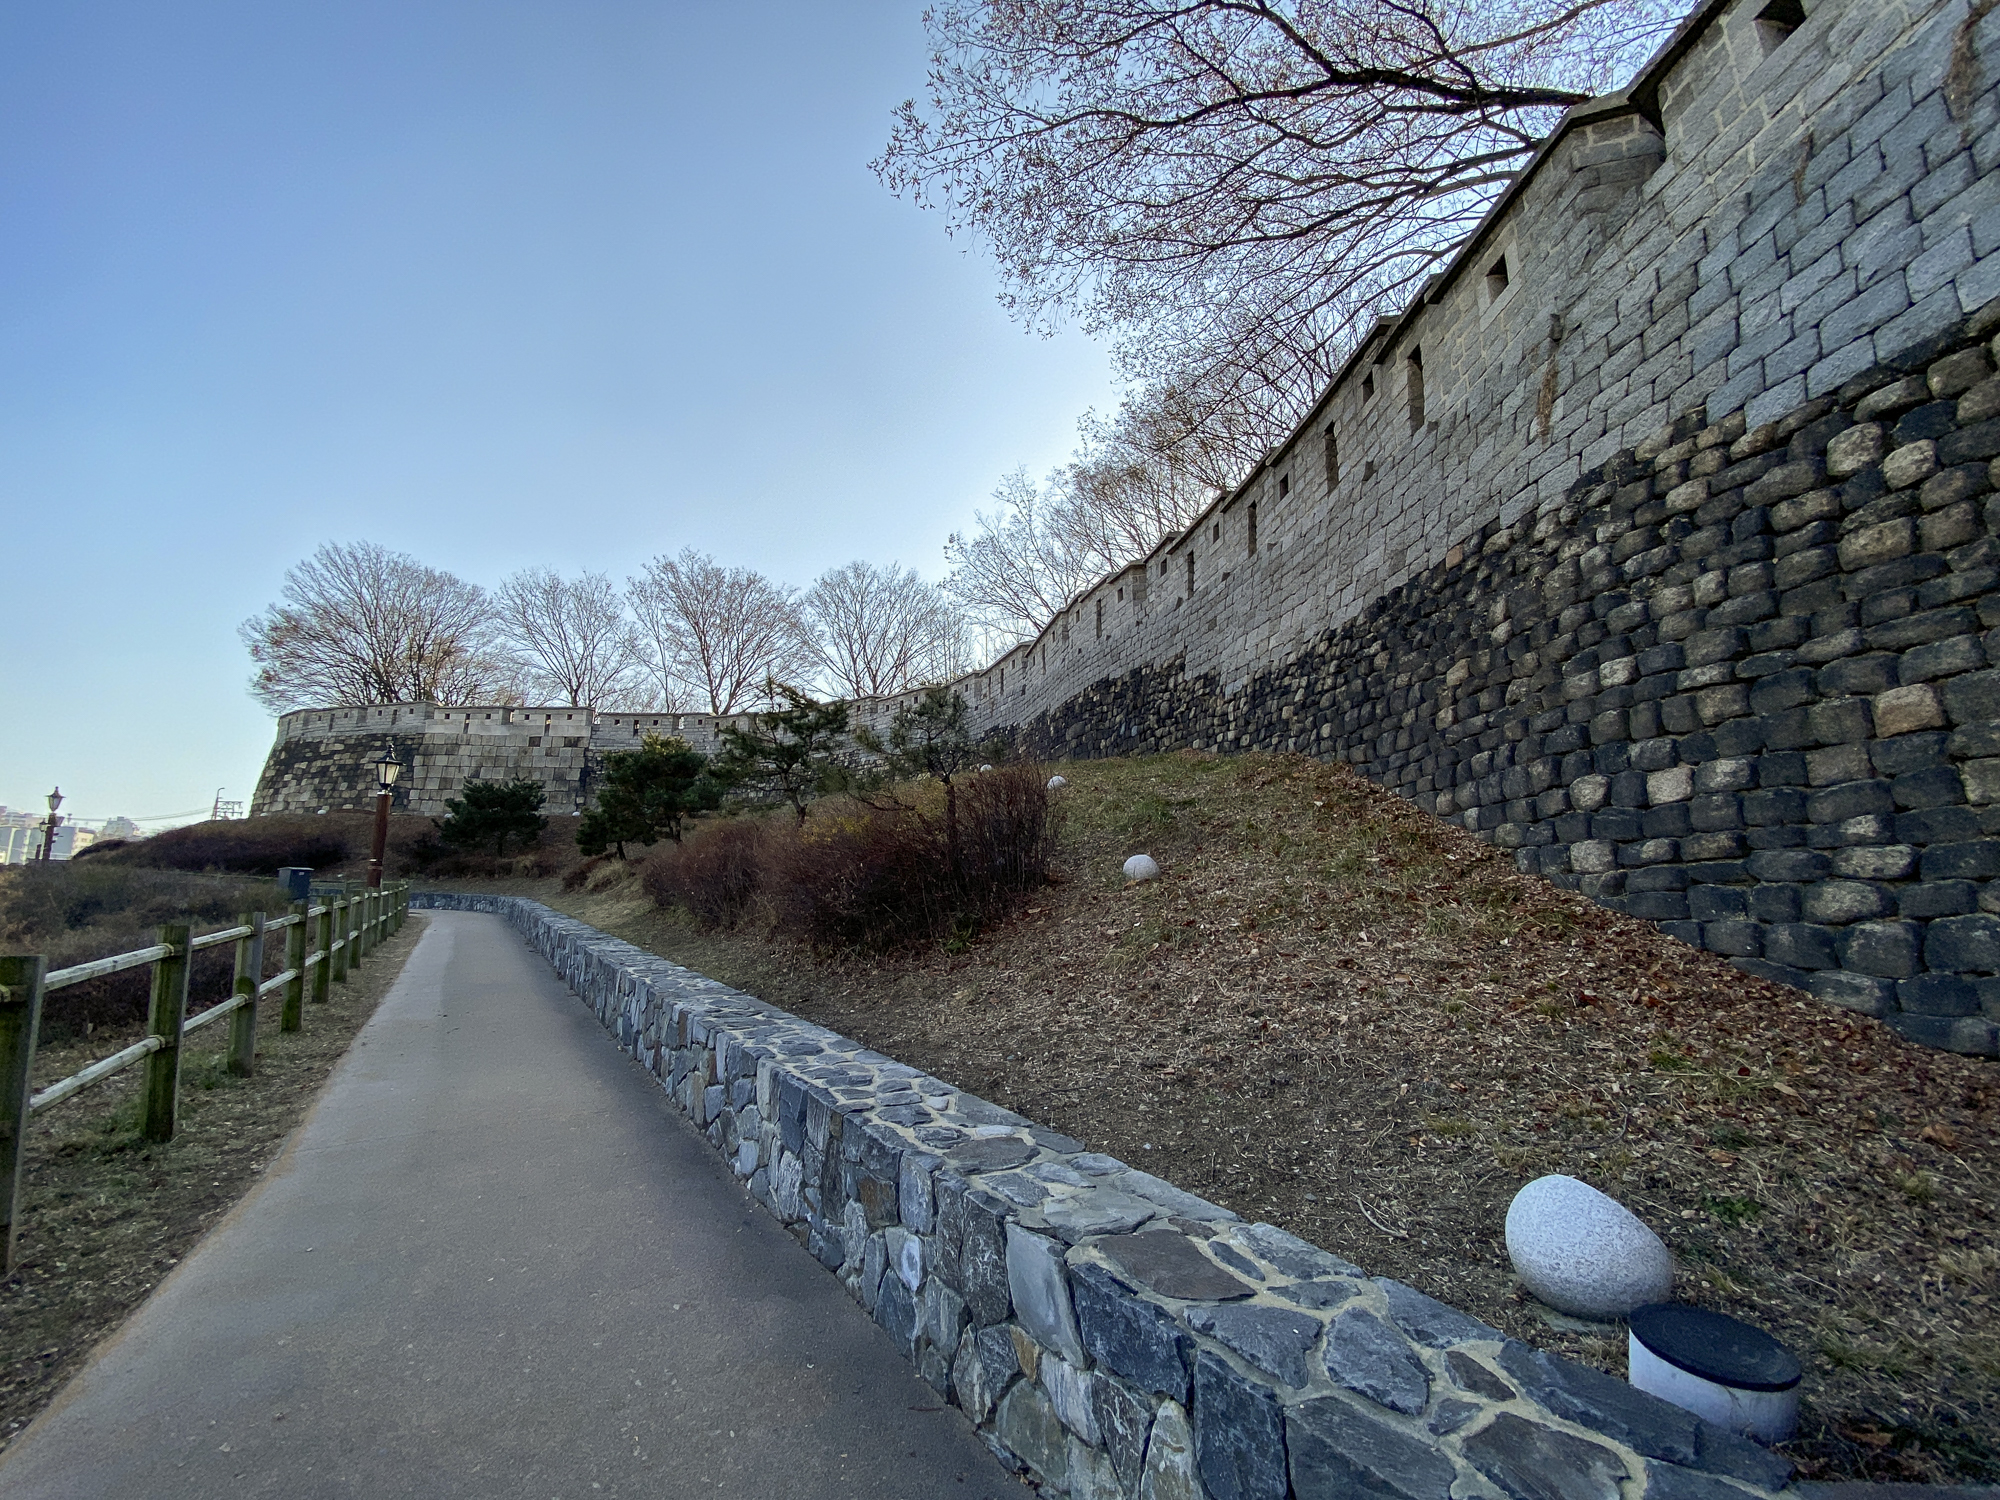 The fortress and gate surrounding Seoul are called the Seoul City Wall.